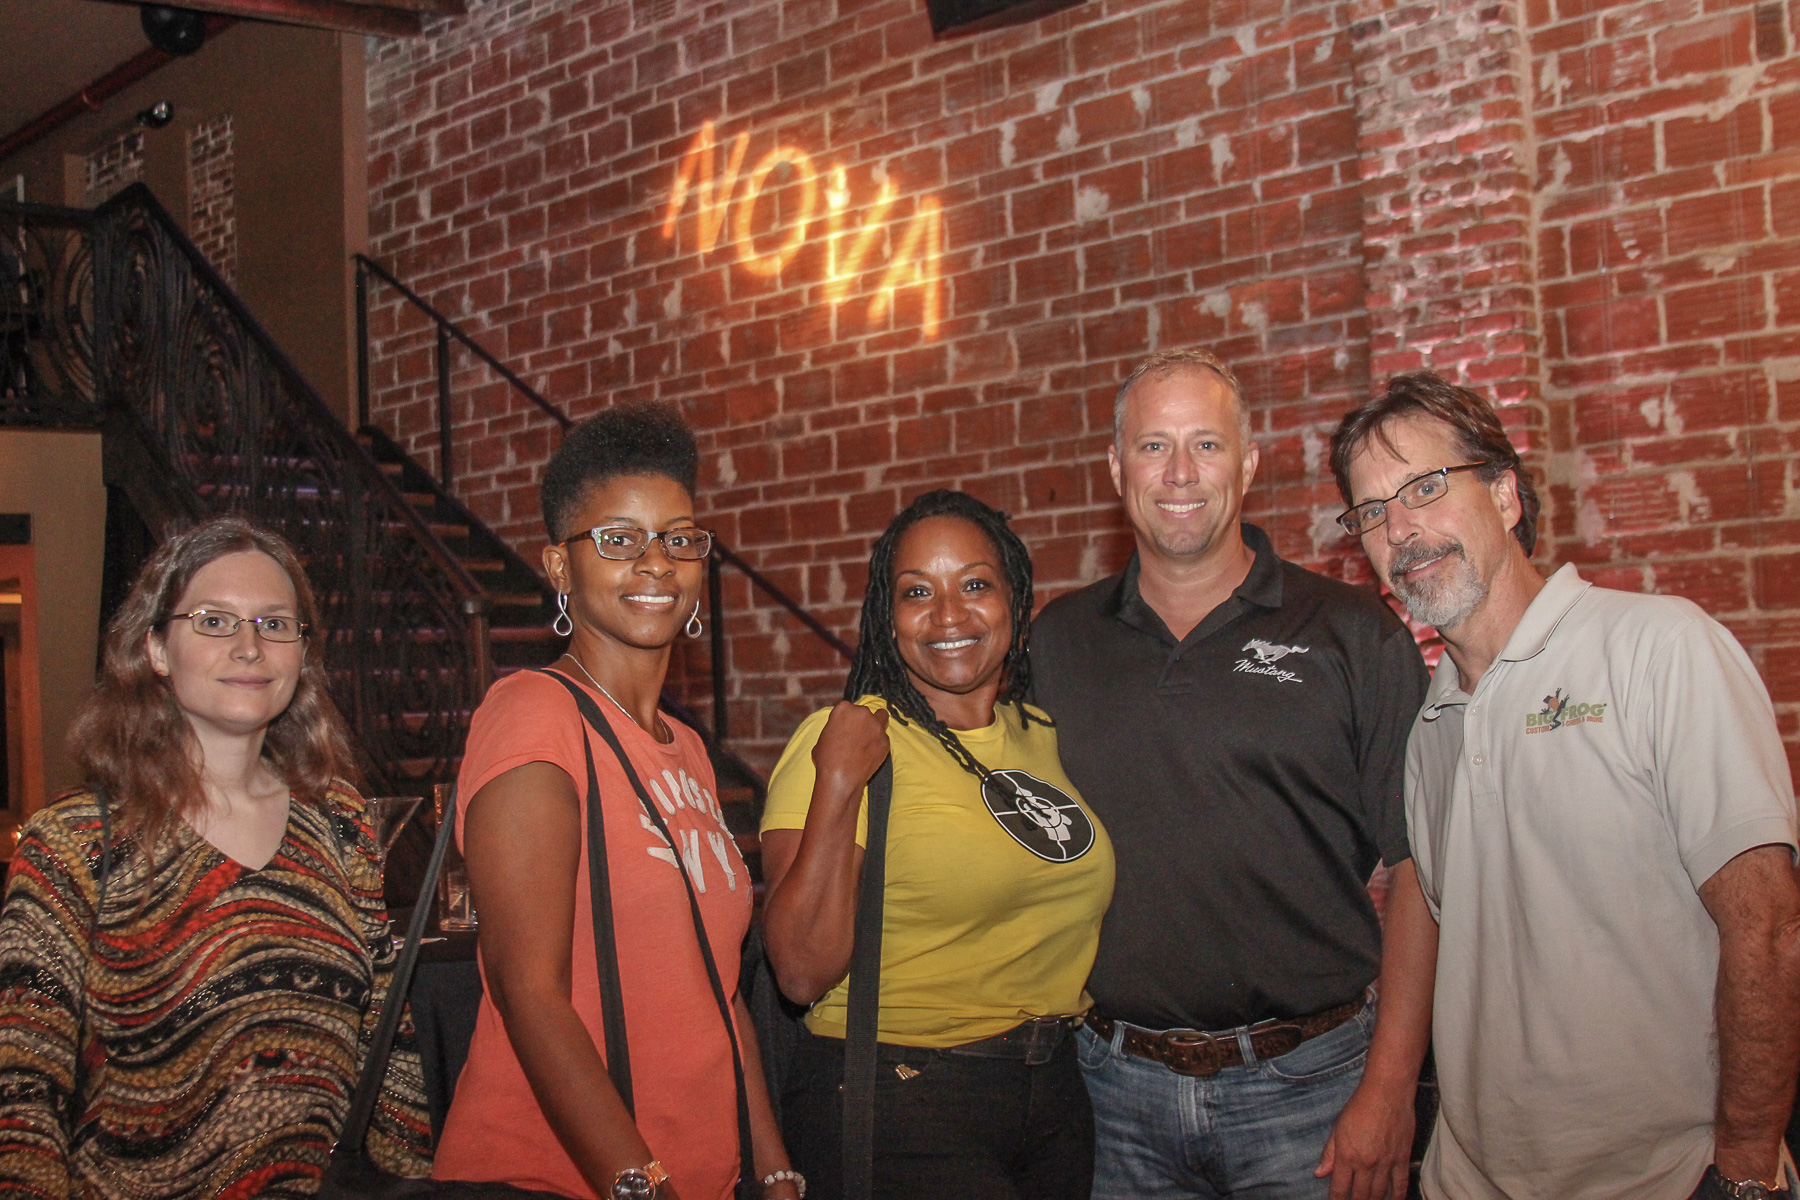 Oyster Dinner Gives Us Pearls of Wisdom with the Entrepreneur Social Club at historic DTSP venue NOVA 535 in beautiful downtown St. Pete, Florida